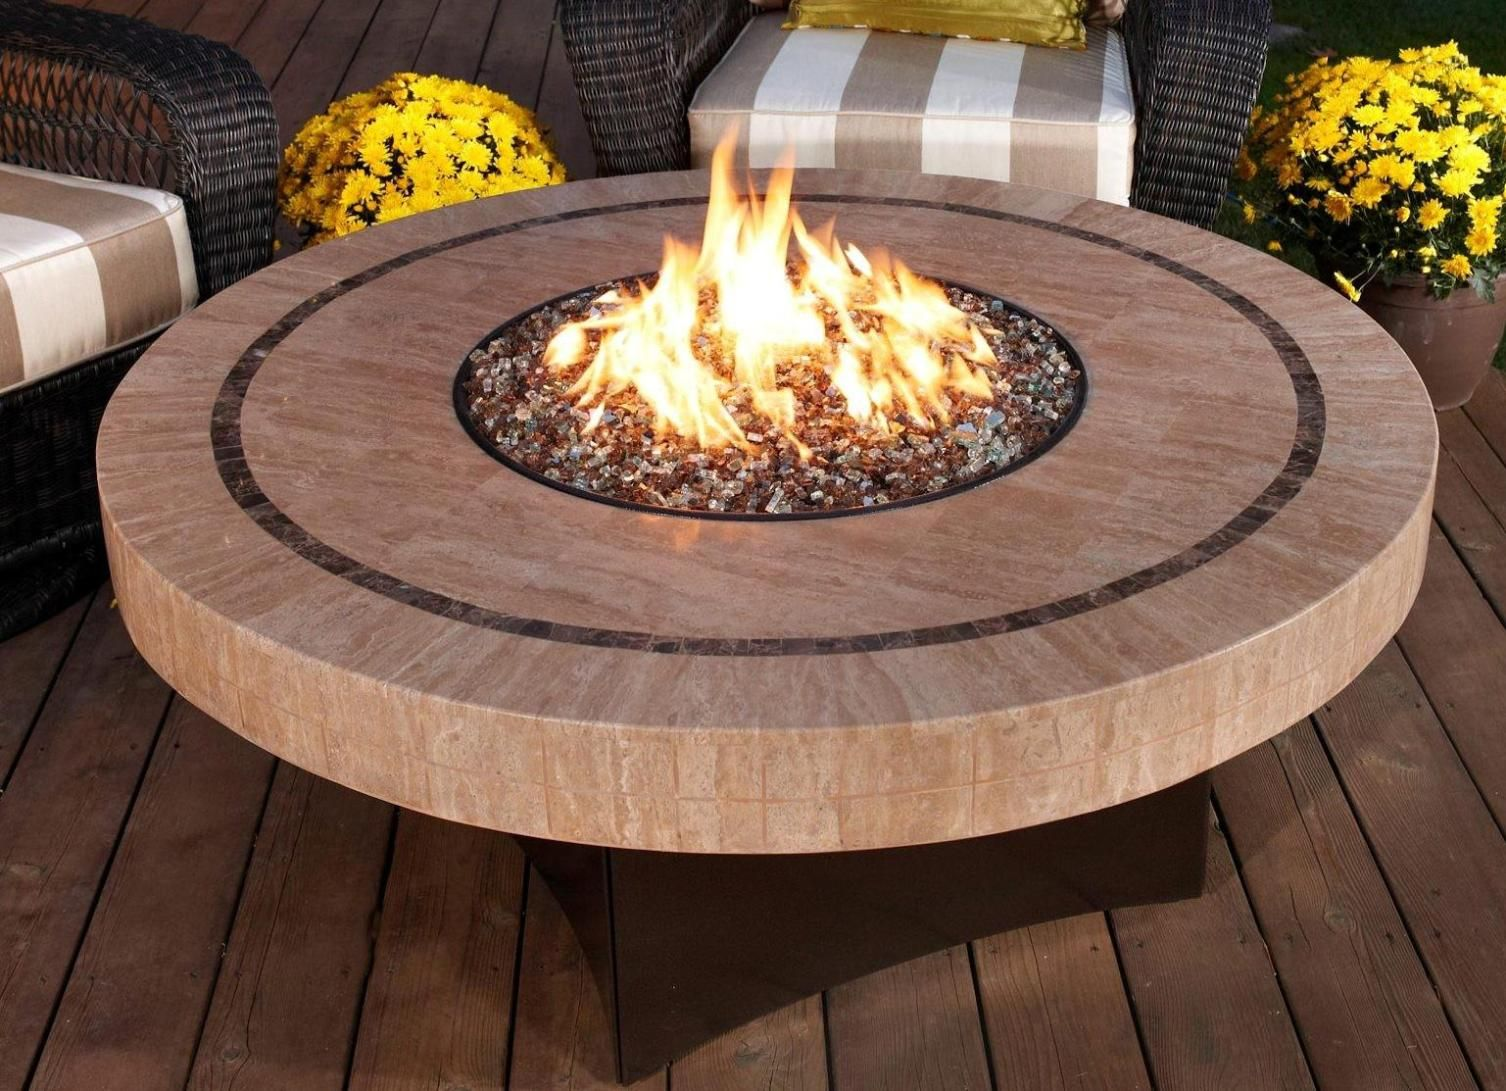 Stylish fire pit coffee table httpdecorrgotrobbieonline stylish fire pit coffee table httpdecorrgotrobbieonline geotapseo Gallery